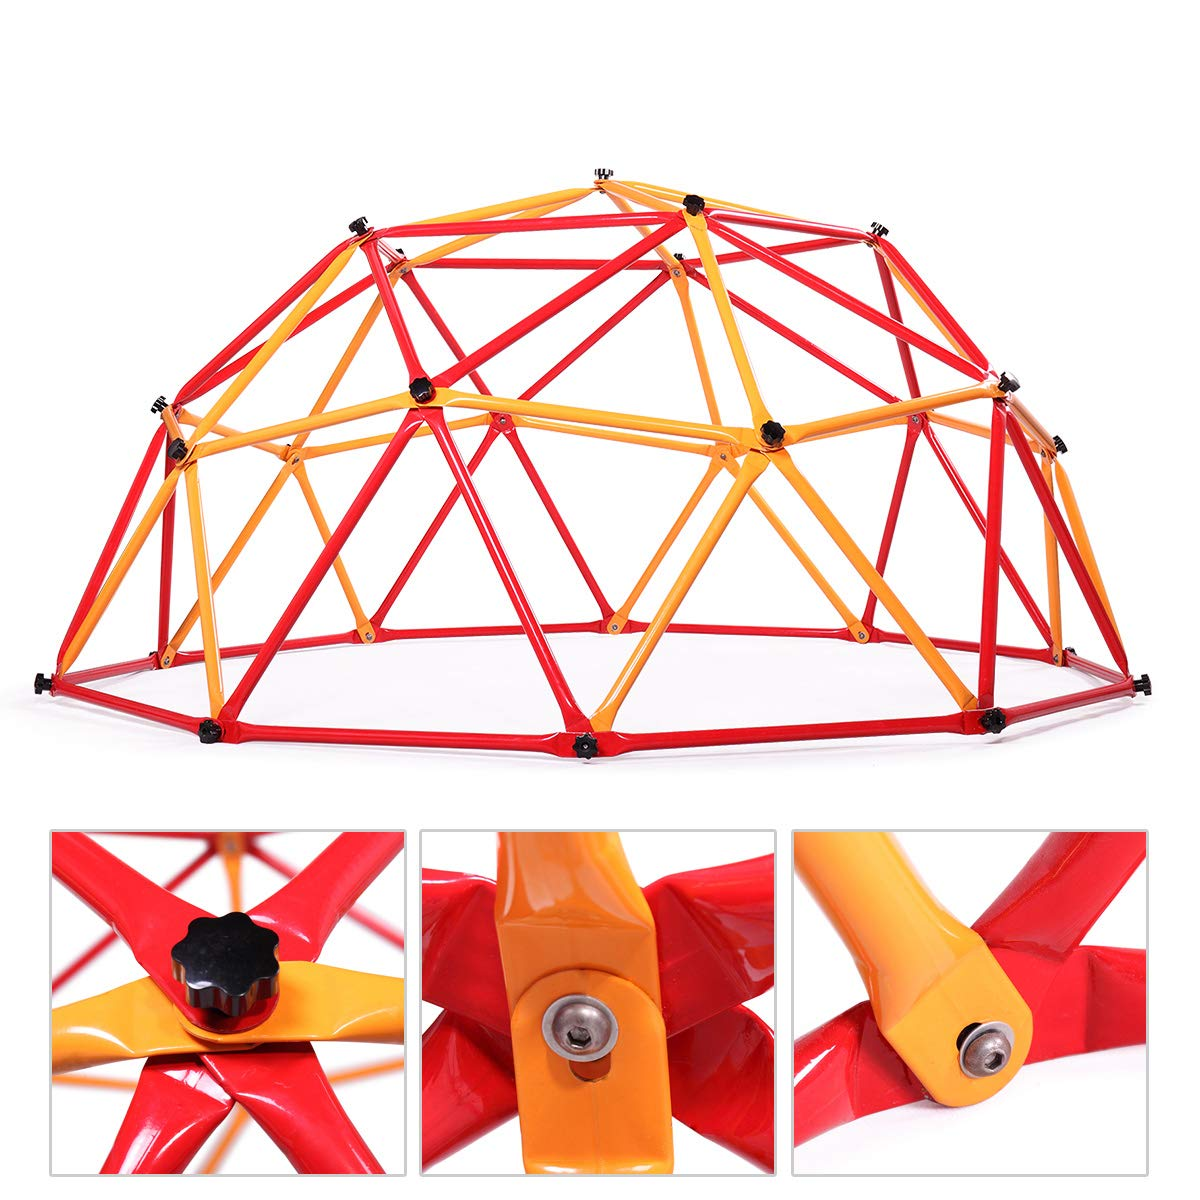 JAXPETY Outdoor Dome Climber Playground Children Kid Swing Set Climbing Frame Backyard Gym by JAXPETY (Image #1)